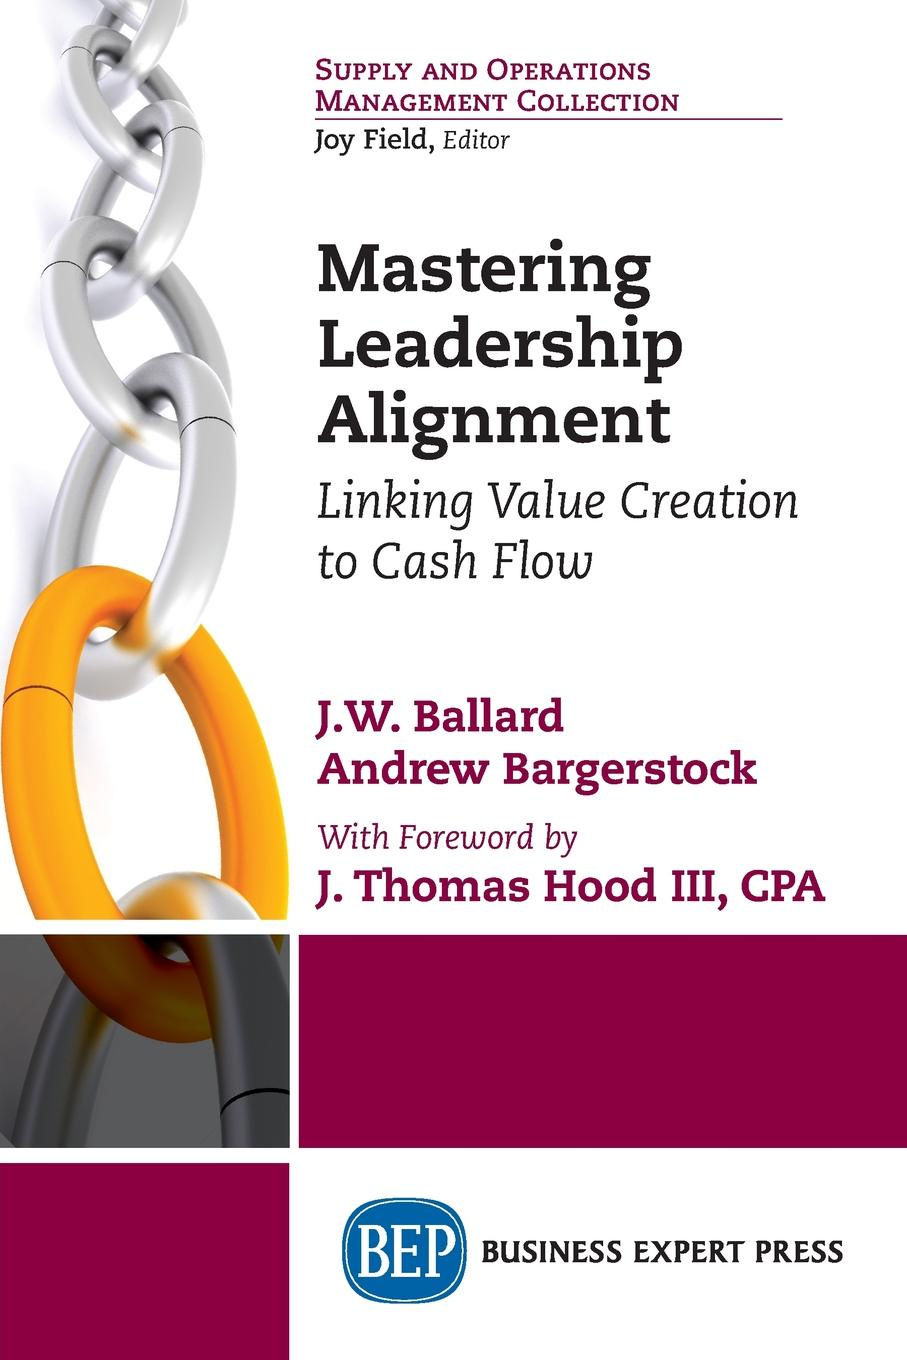 Mastering Leadership Alignment. Linking Value Creation to Cash Flow